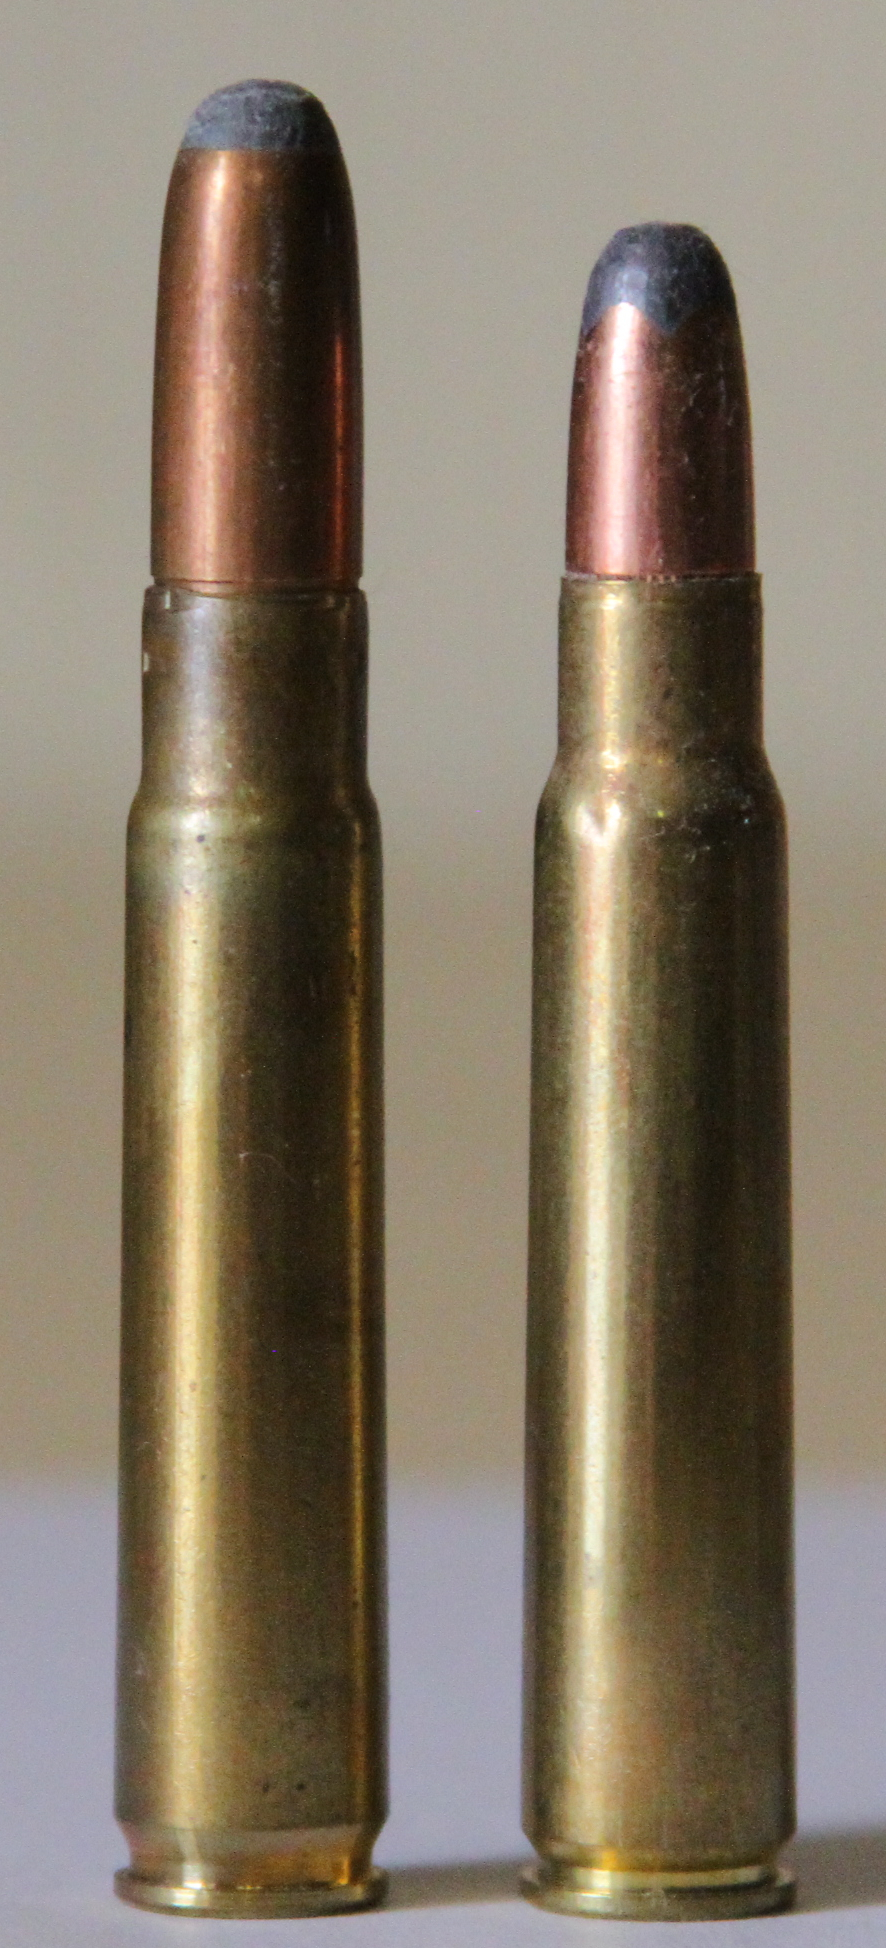 9x57mm Mauser on the left and 8x57mm on the right. (Picture courtesy Wikipedia).